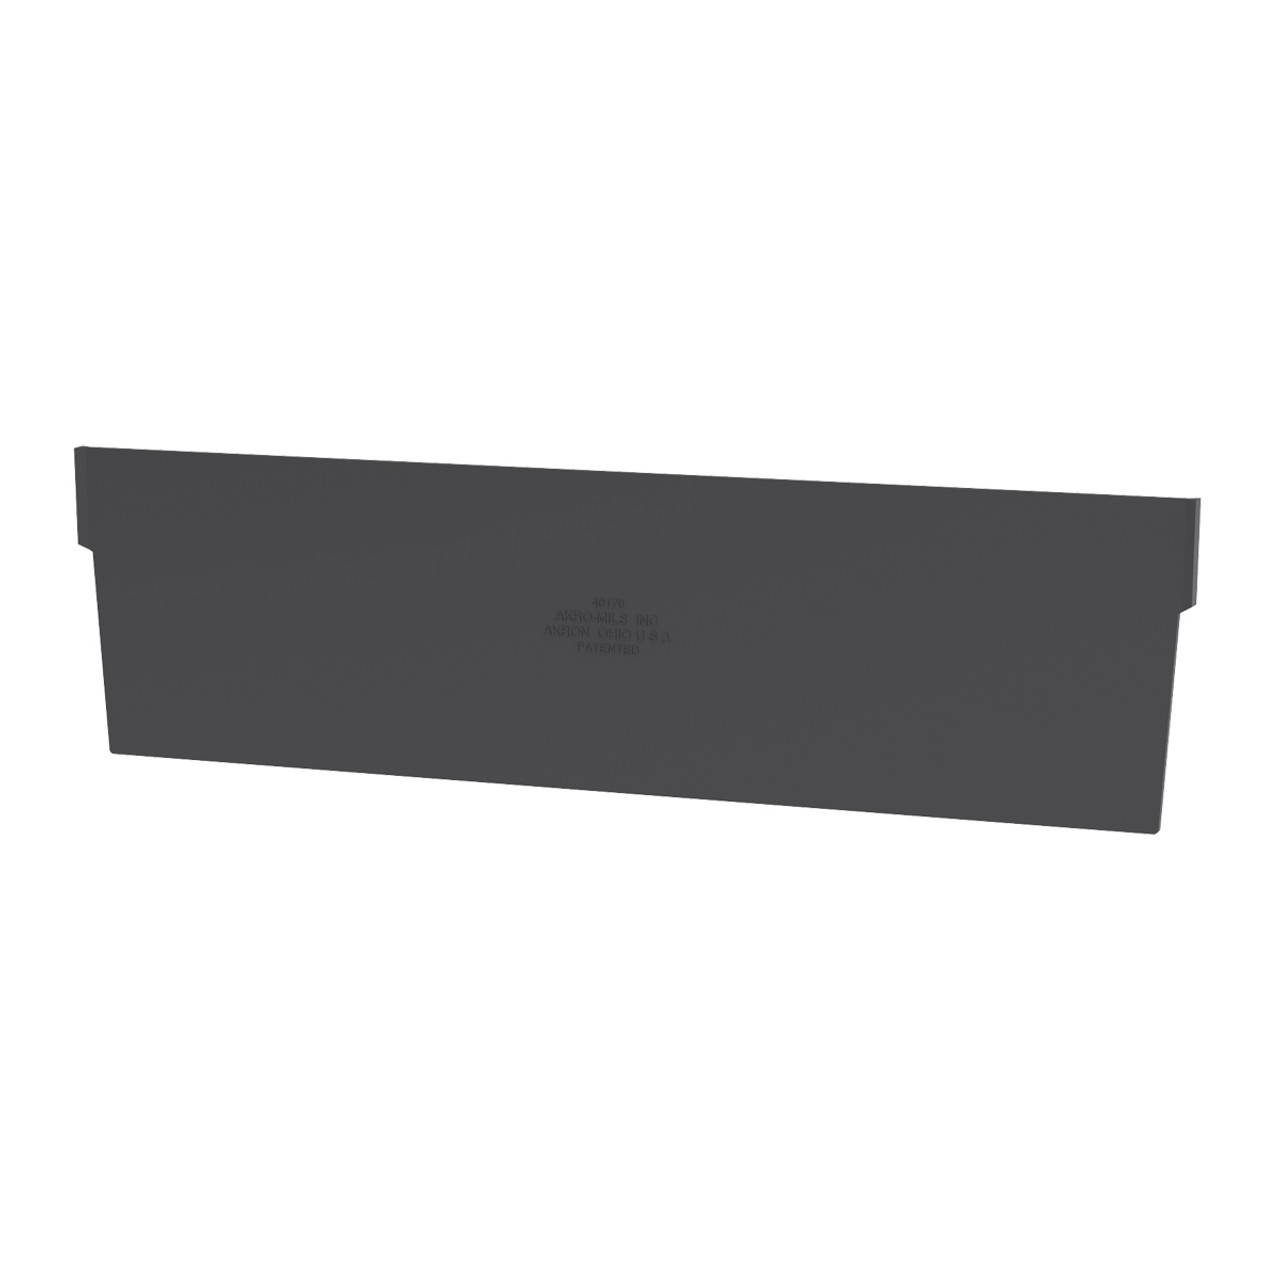 Divider for Shelf Bins, 24 Pk  40170